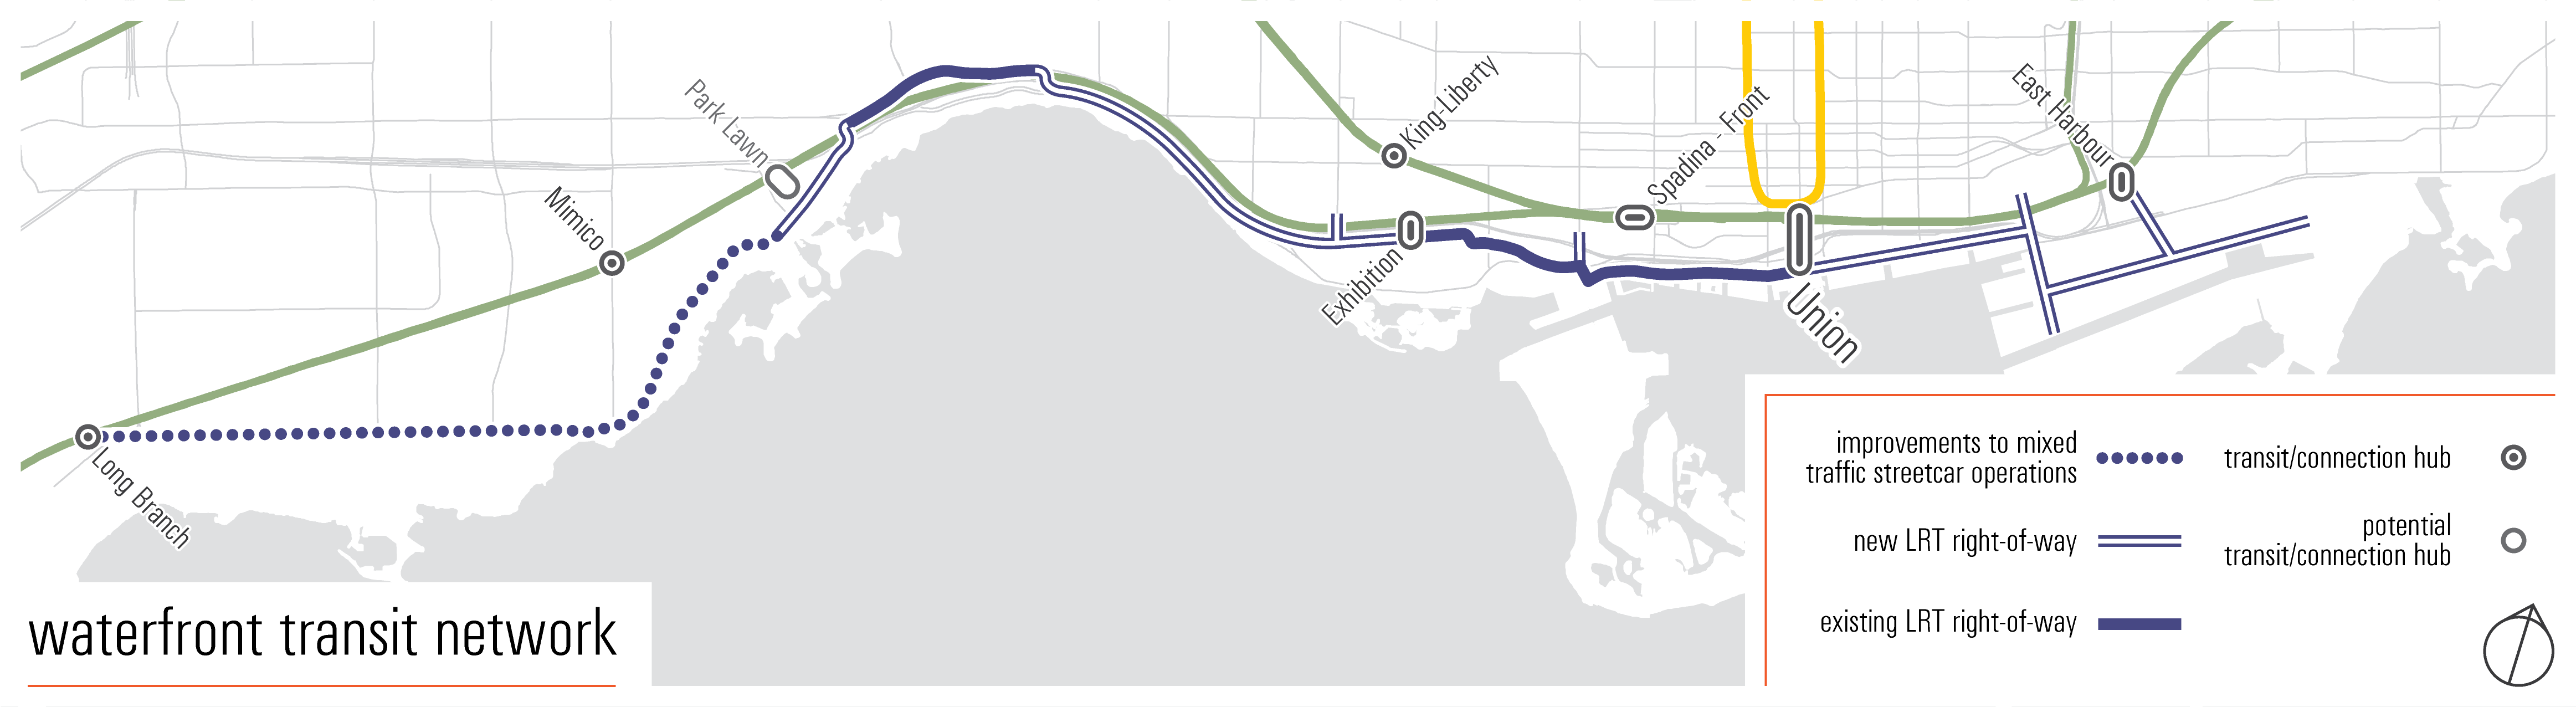 Waterfront transit map. The new transit will connect Long Branch across the waterfront to Union then east to East Harbour